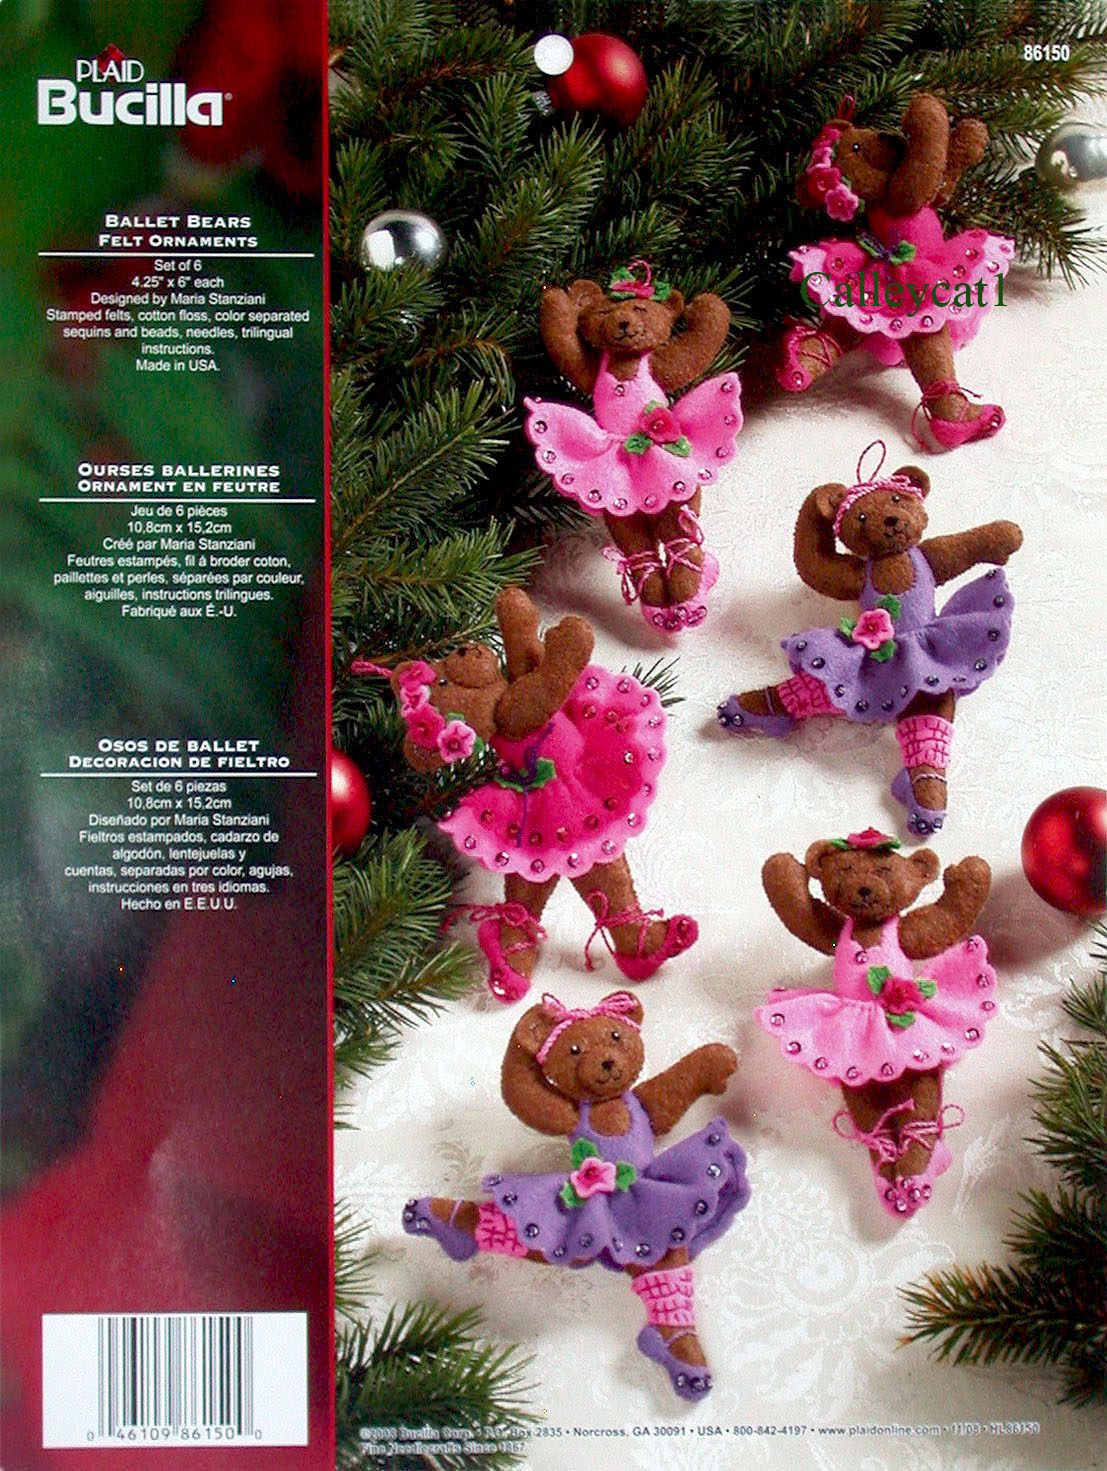 bucilla ballet bears 6 piece felt christmas ornament kit - Christmas Decoration Kits